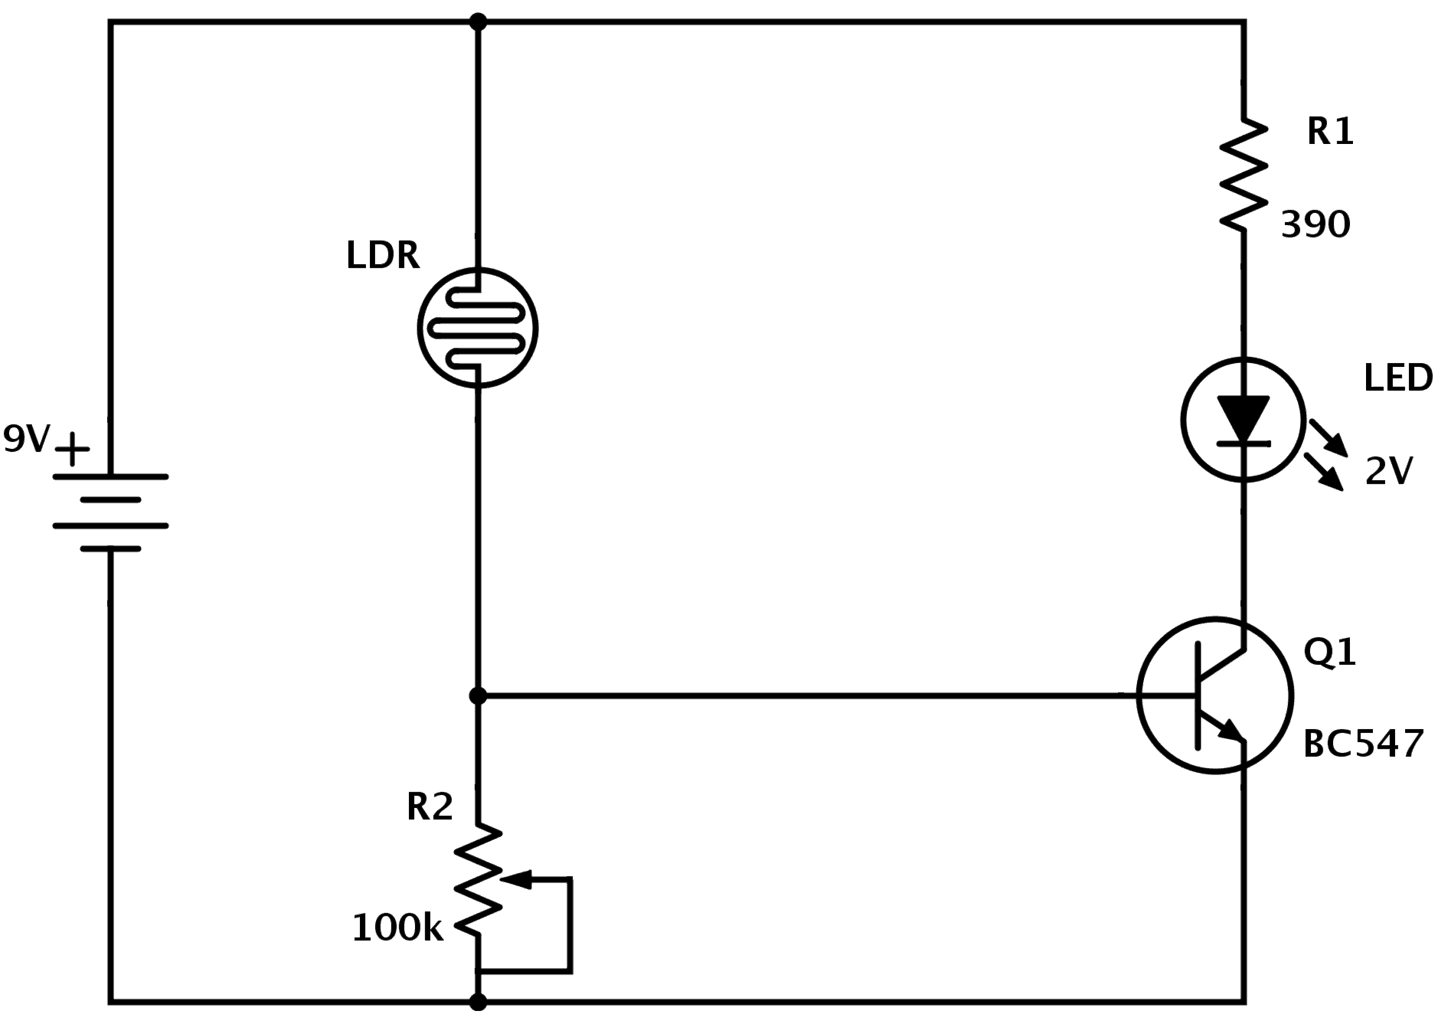 Ldr Circuit Diagram Build Electronic Circuits This Article Is About The Component For Physical